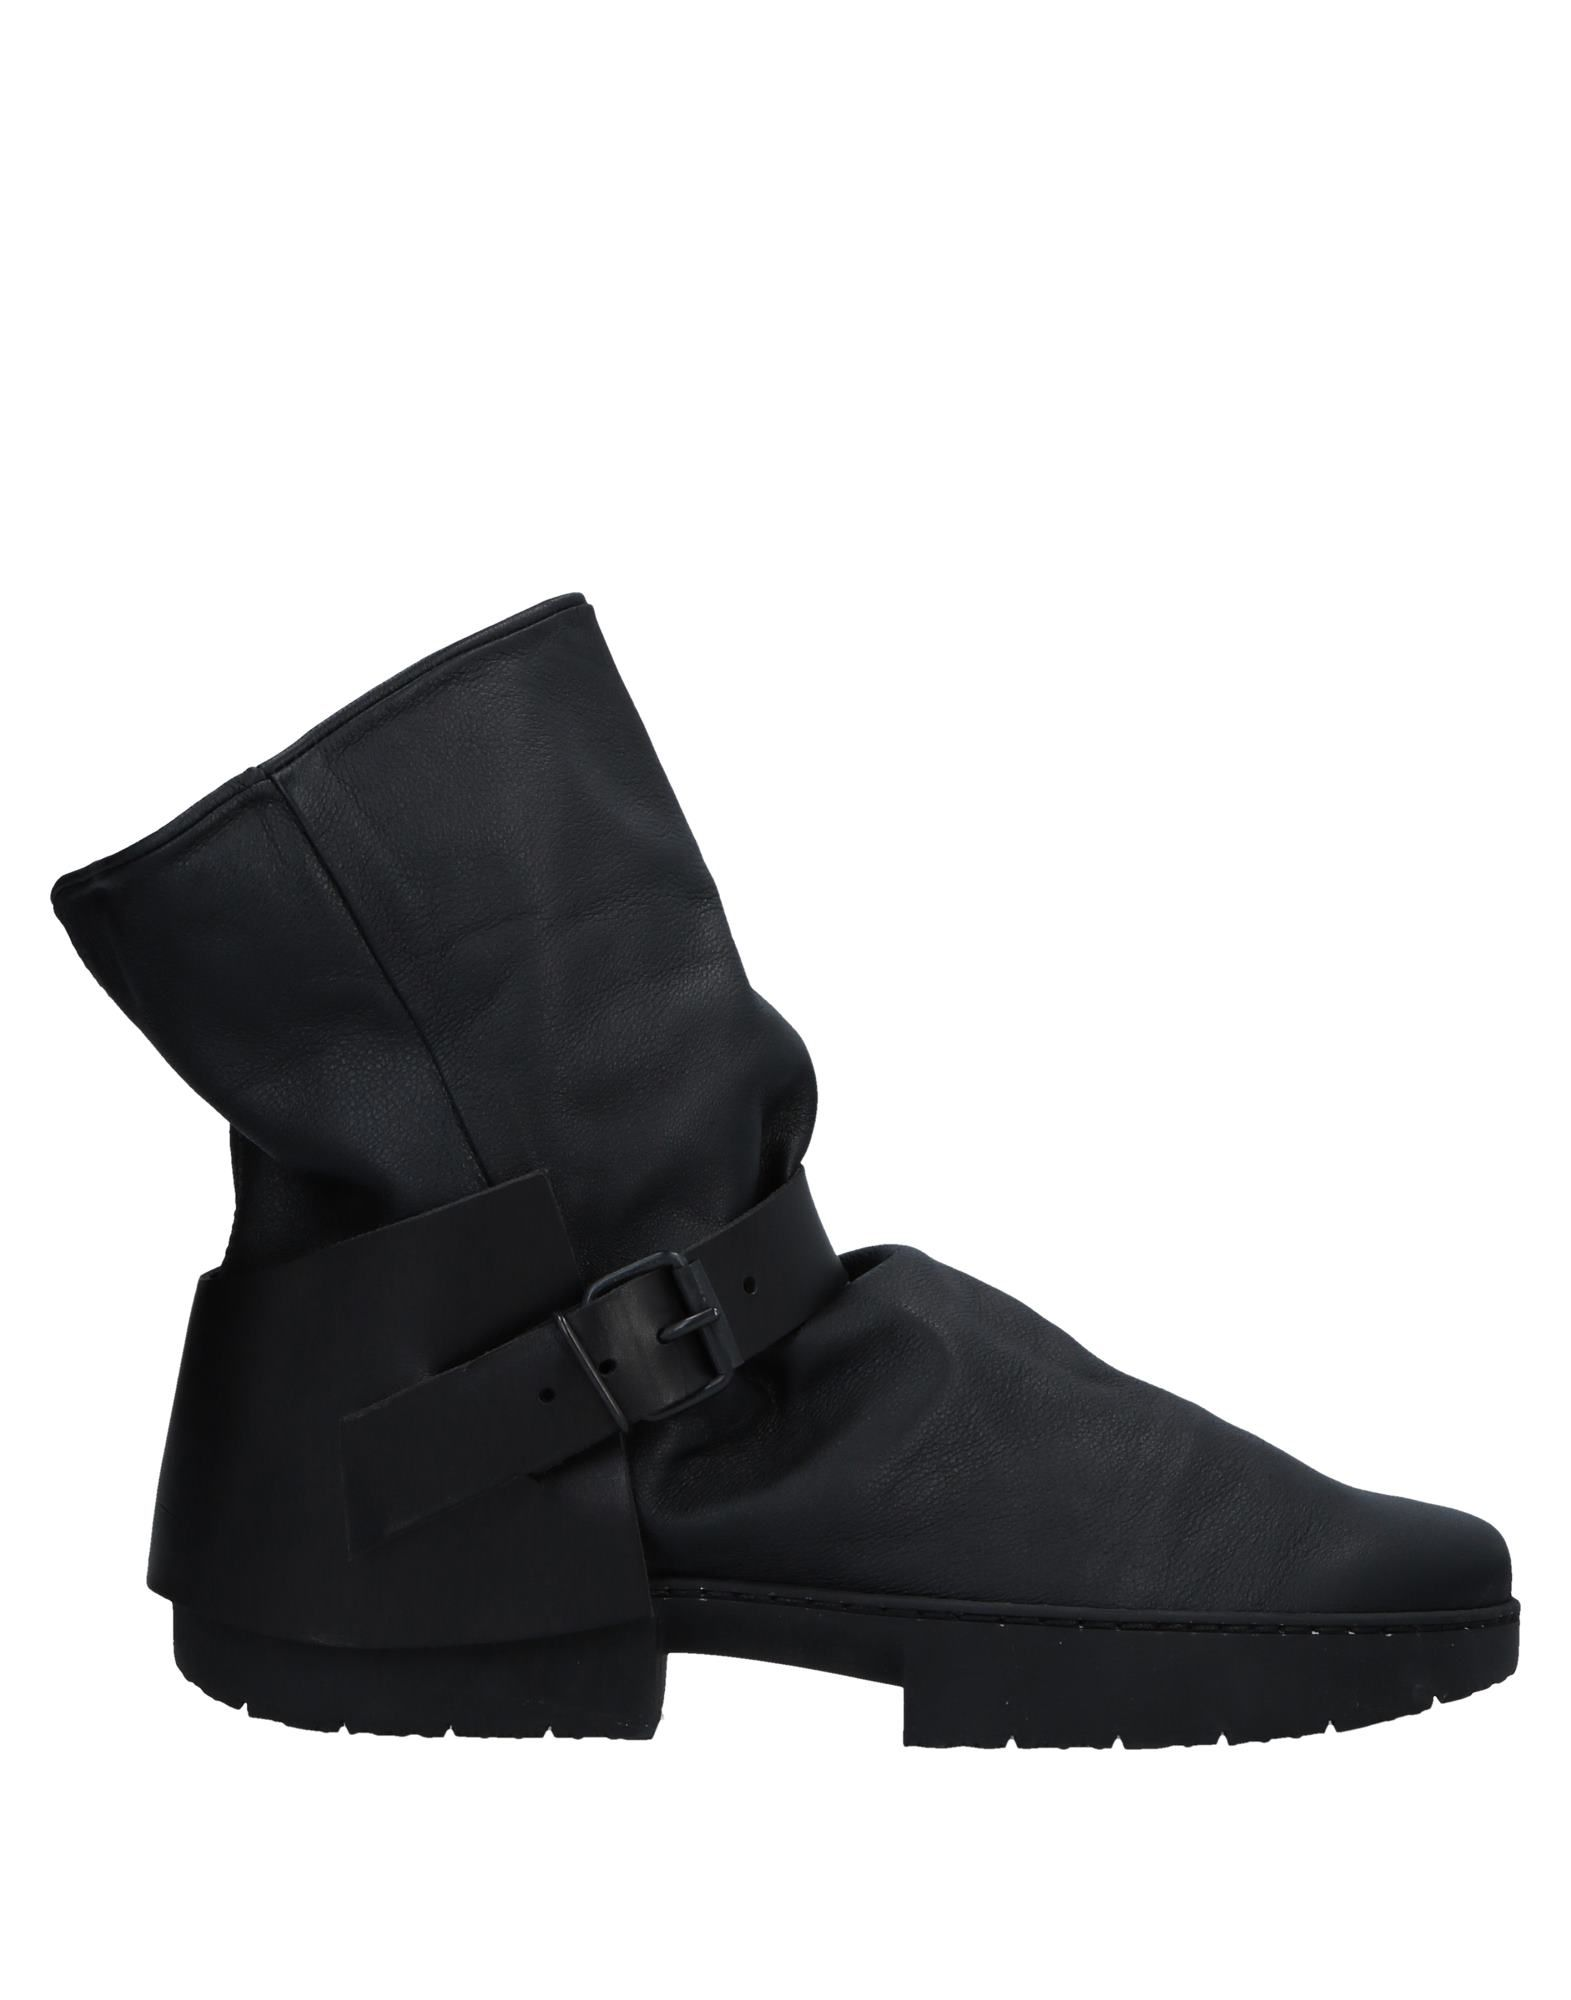 TRIPPEN Ankle Boots in Black